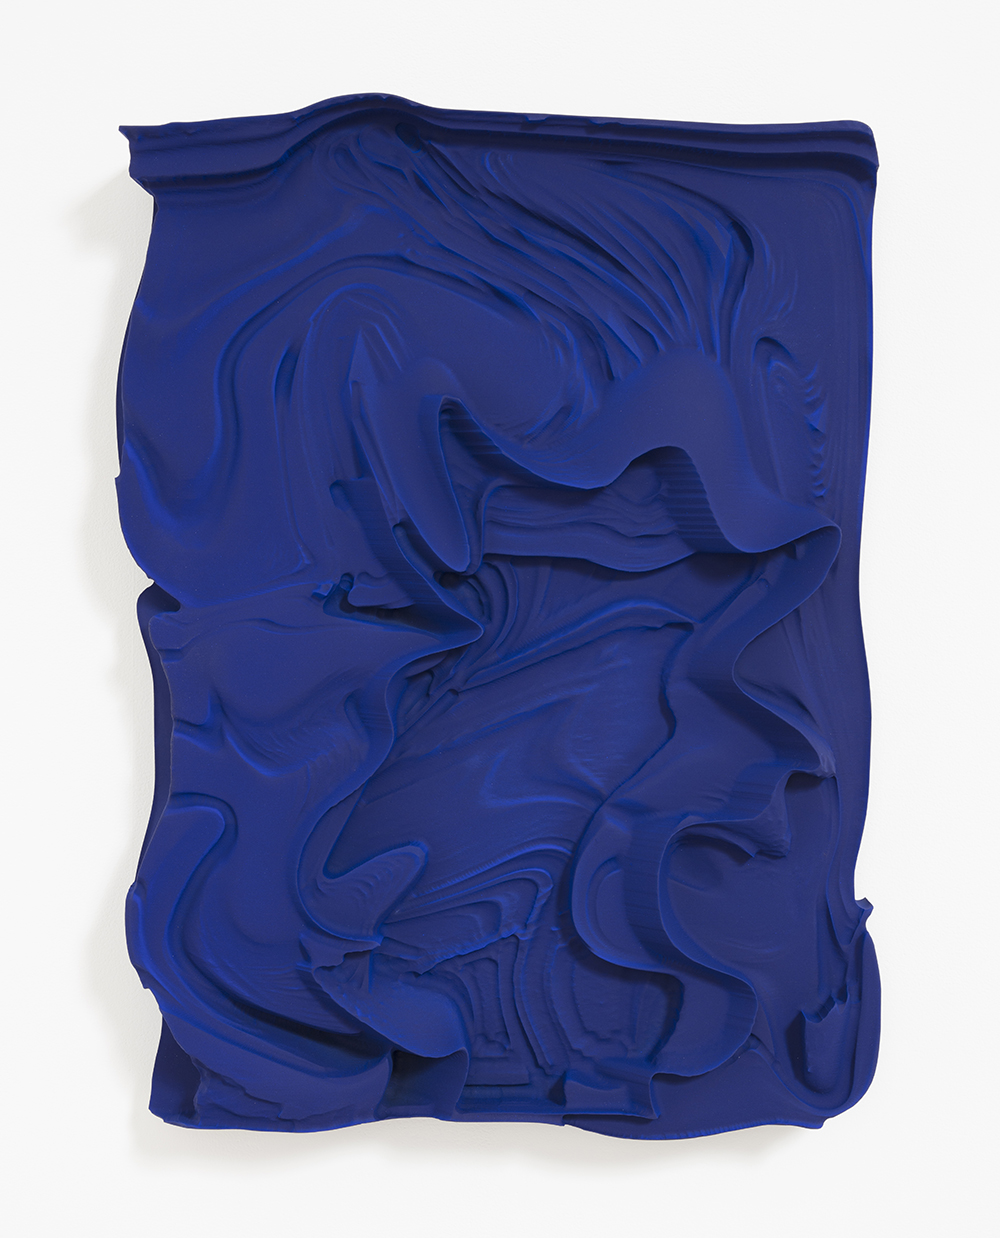 Michael Staniak. <em>OBJ_390</em>, 2017. Polyurethane resin and acrylic, 27 x 20 x 4 inches